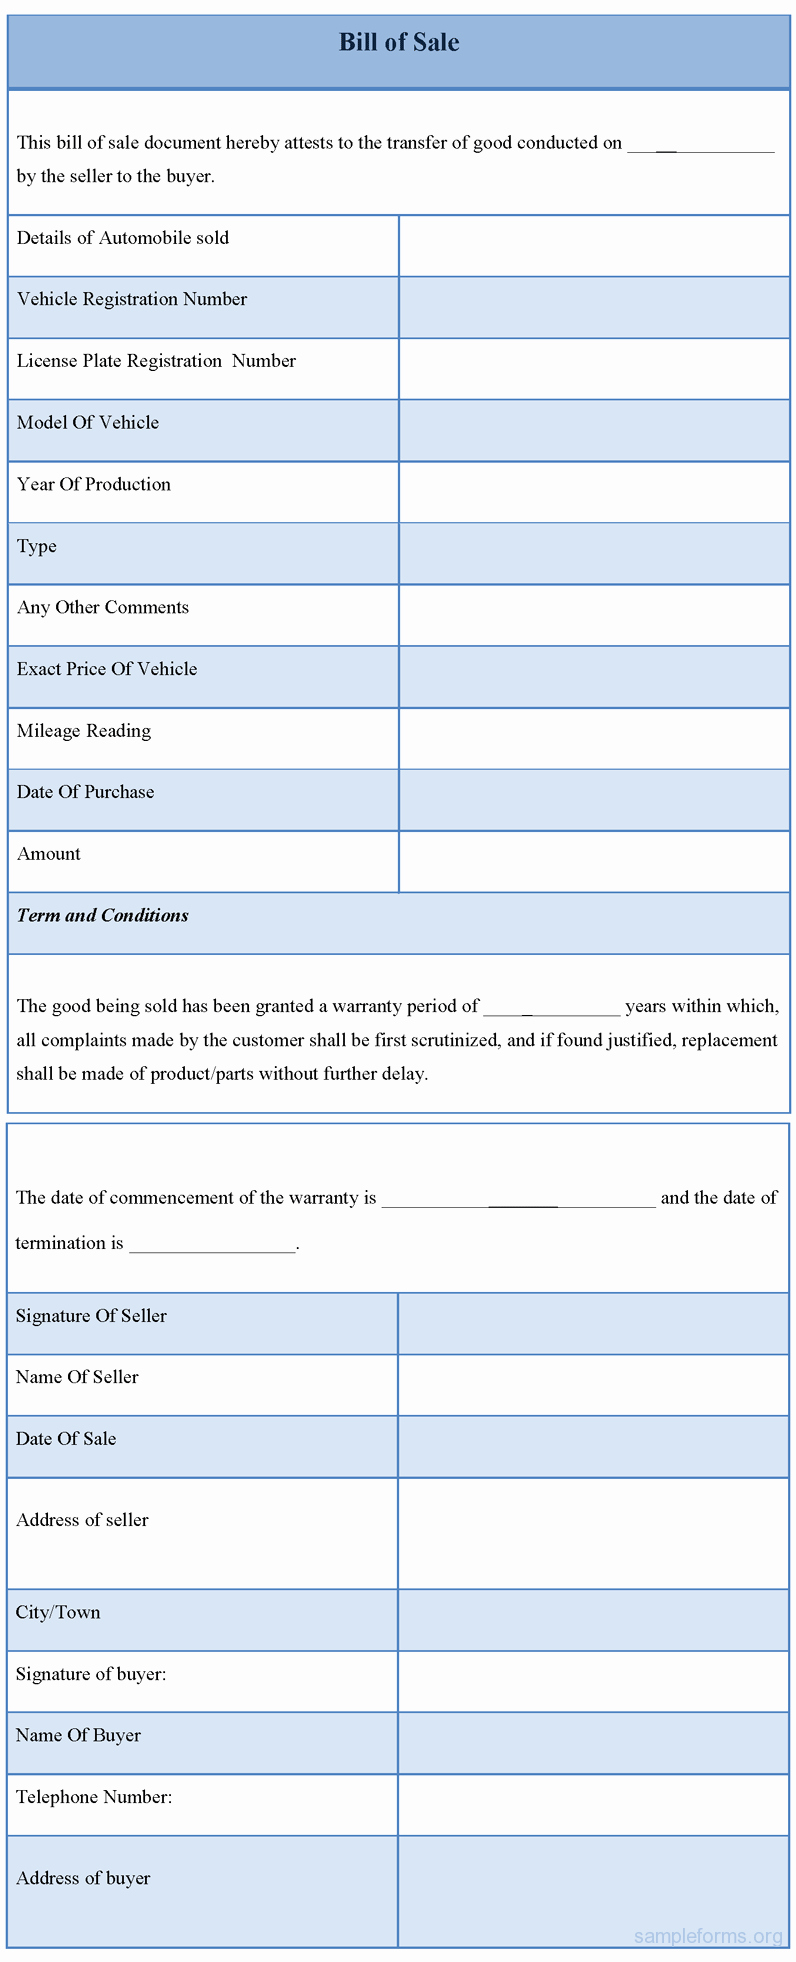 Free forms Bill Of Sale Elegant Free Bill Of Sale form Sample forms